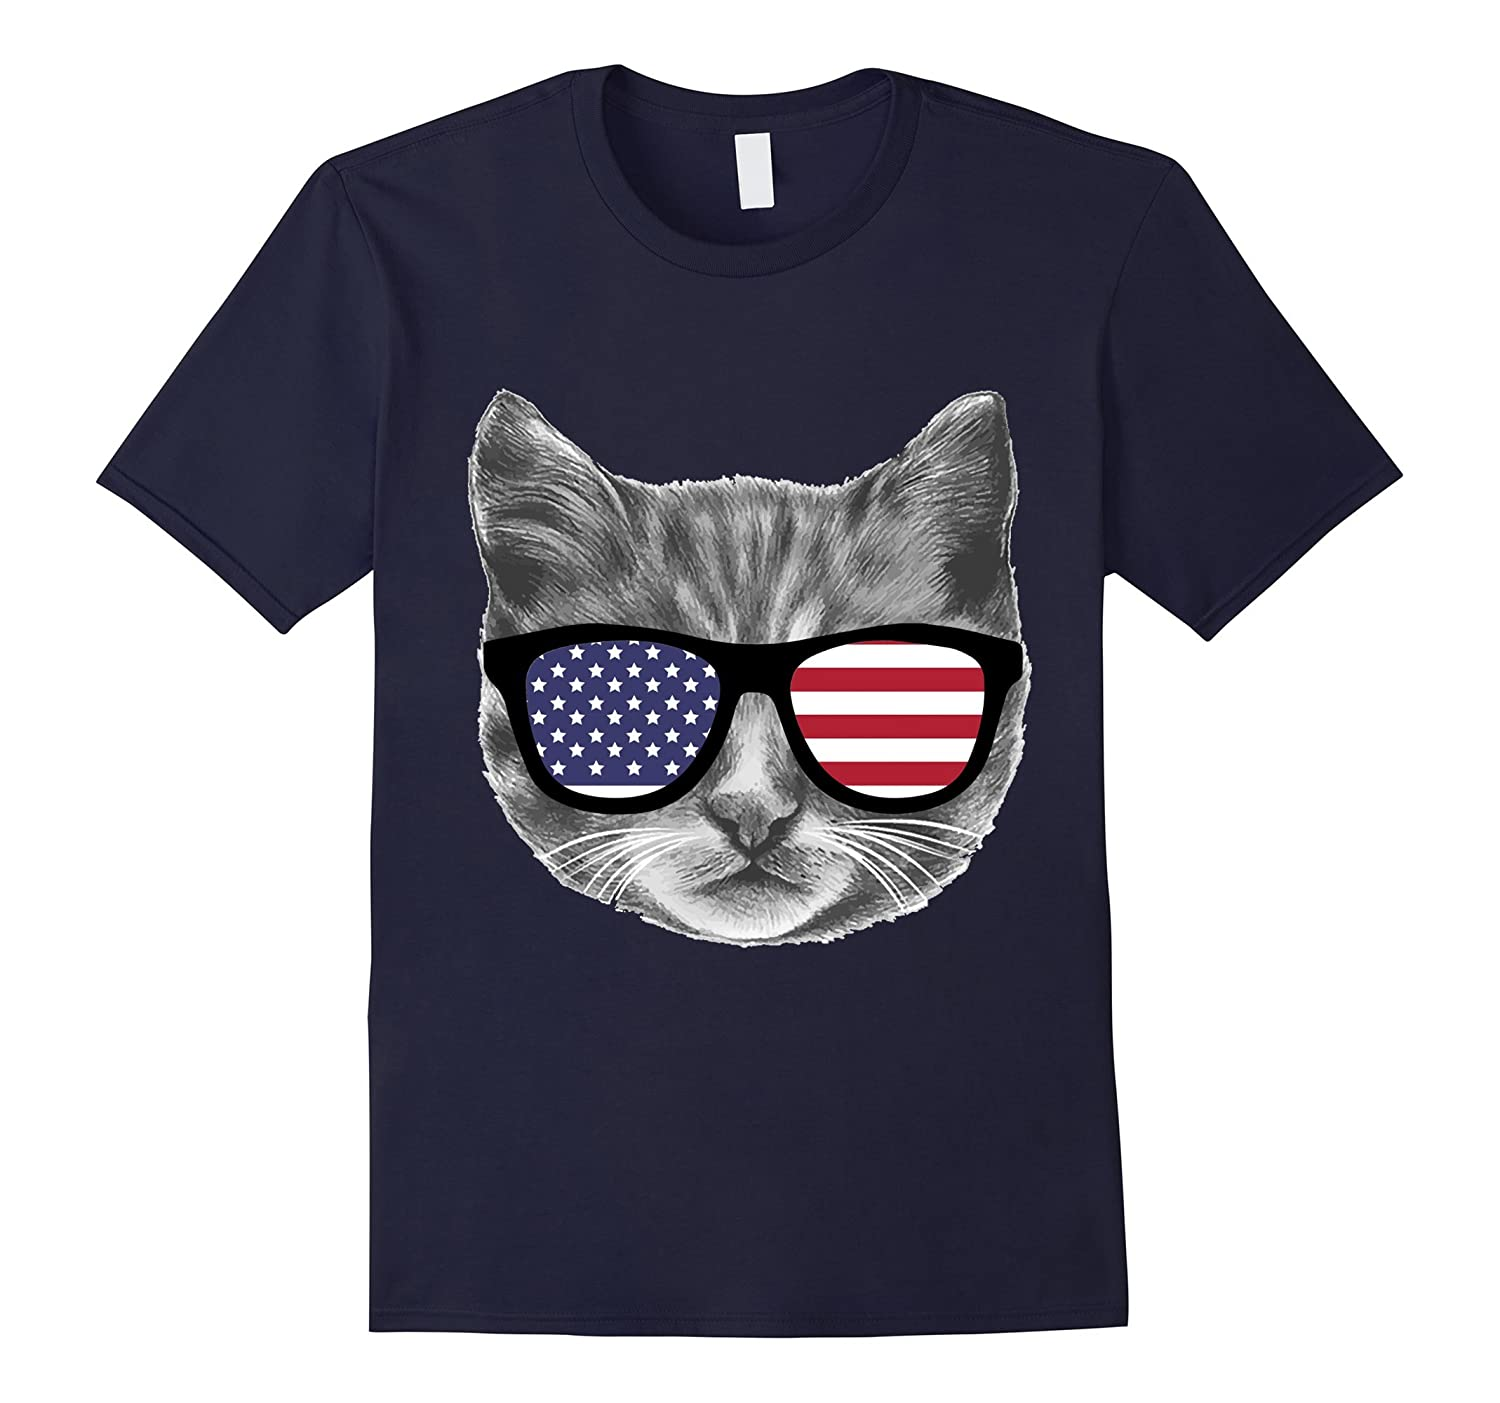 Labor Day T shirt USA Patriotic Cat Kitten American Flag-BN